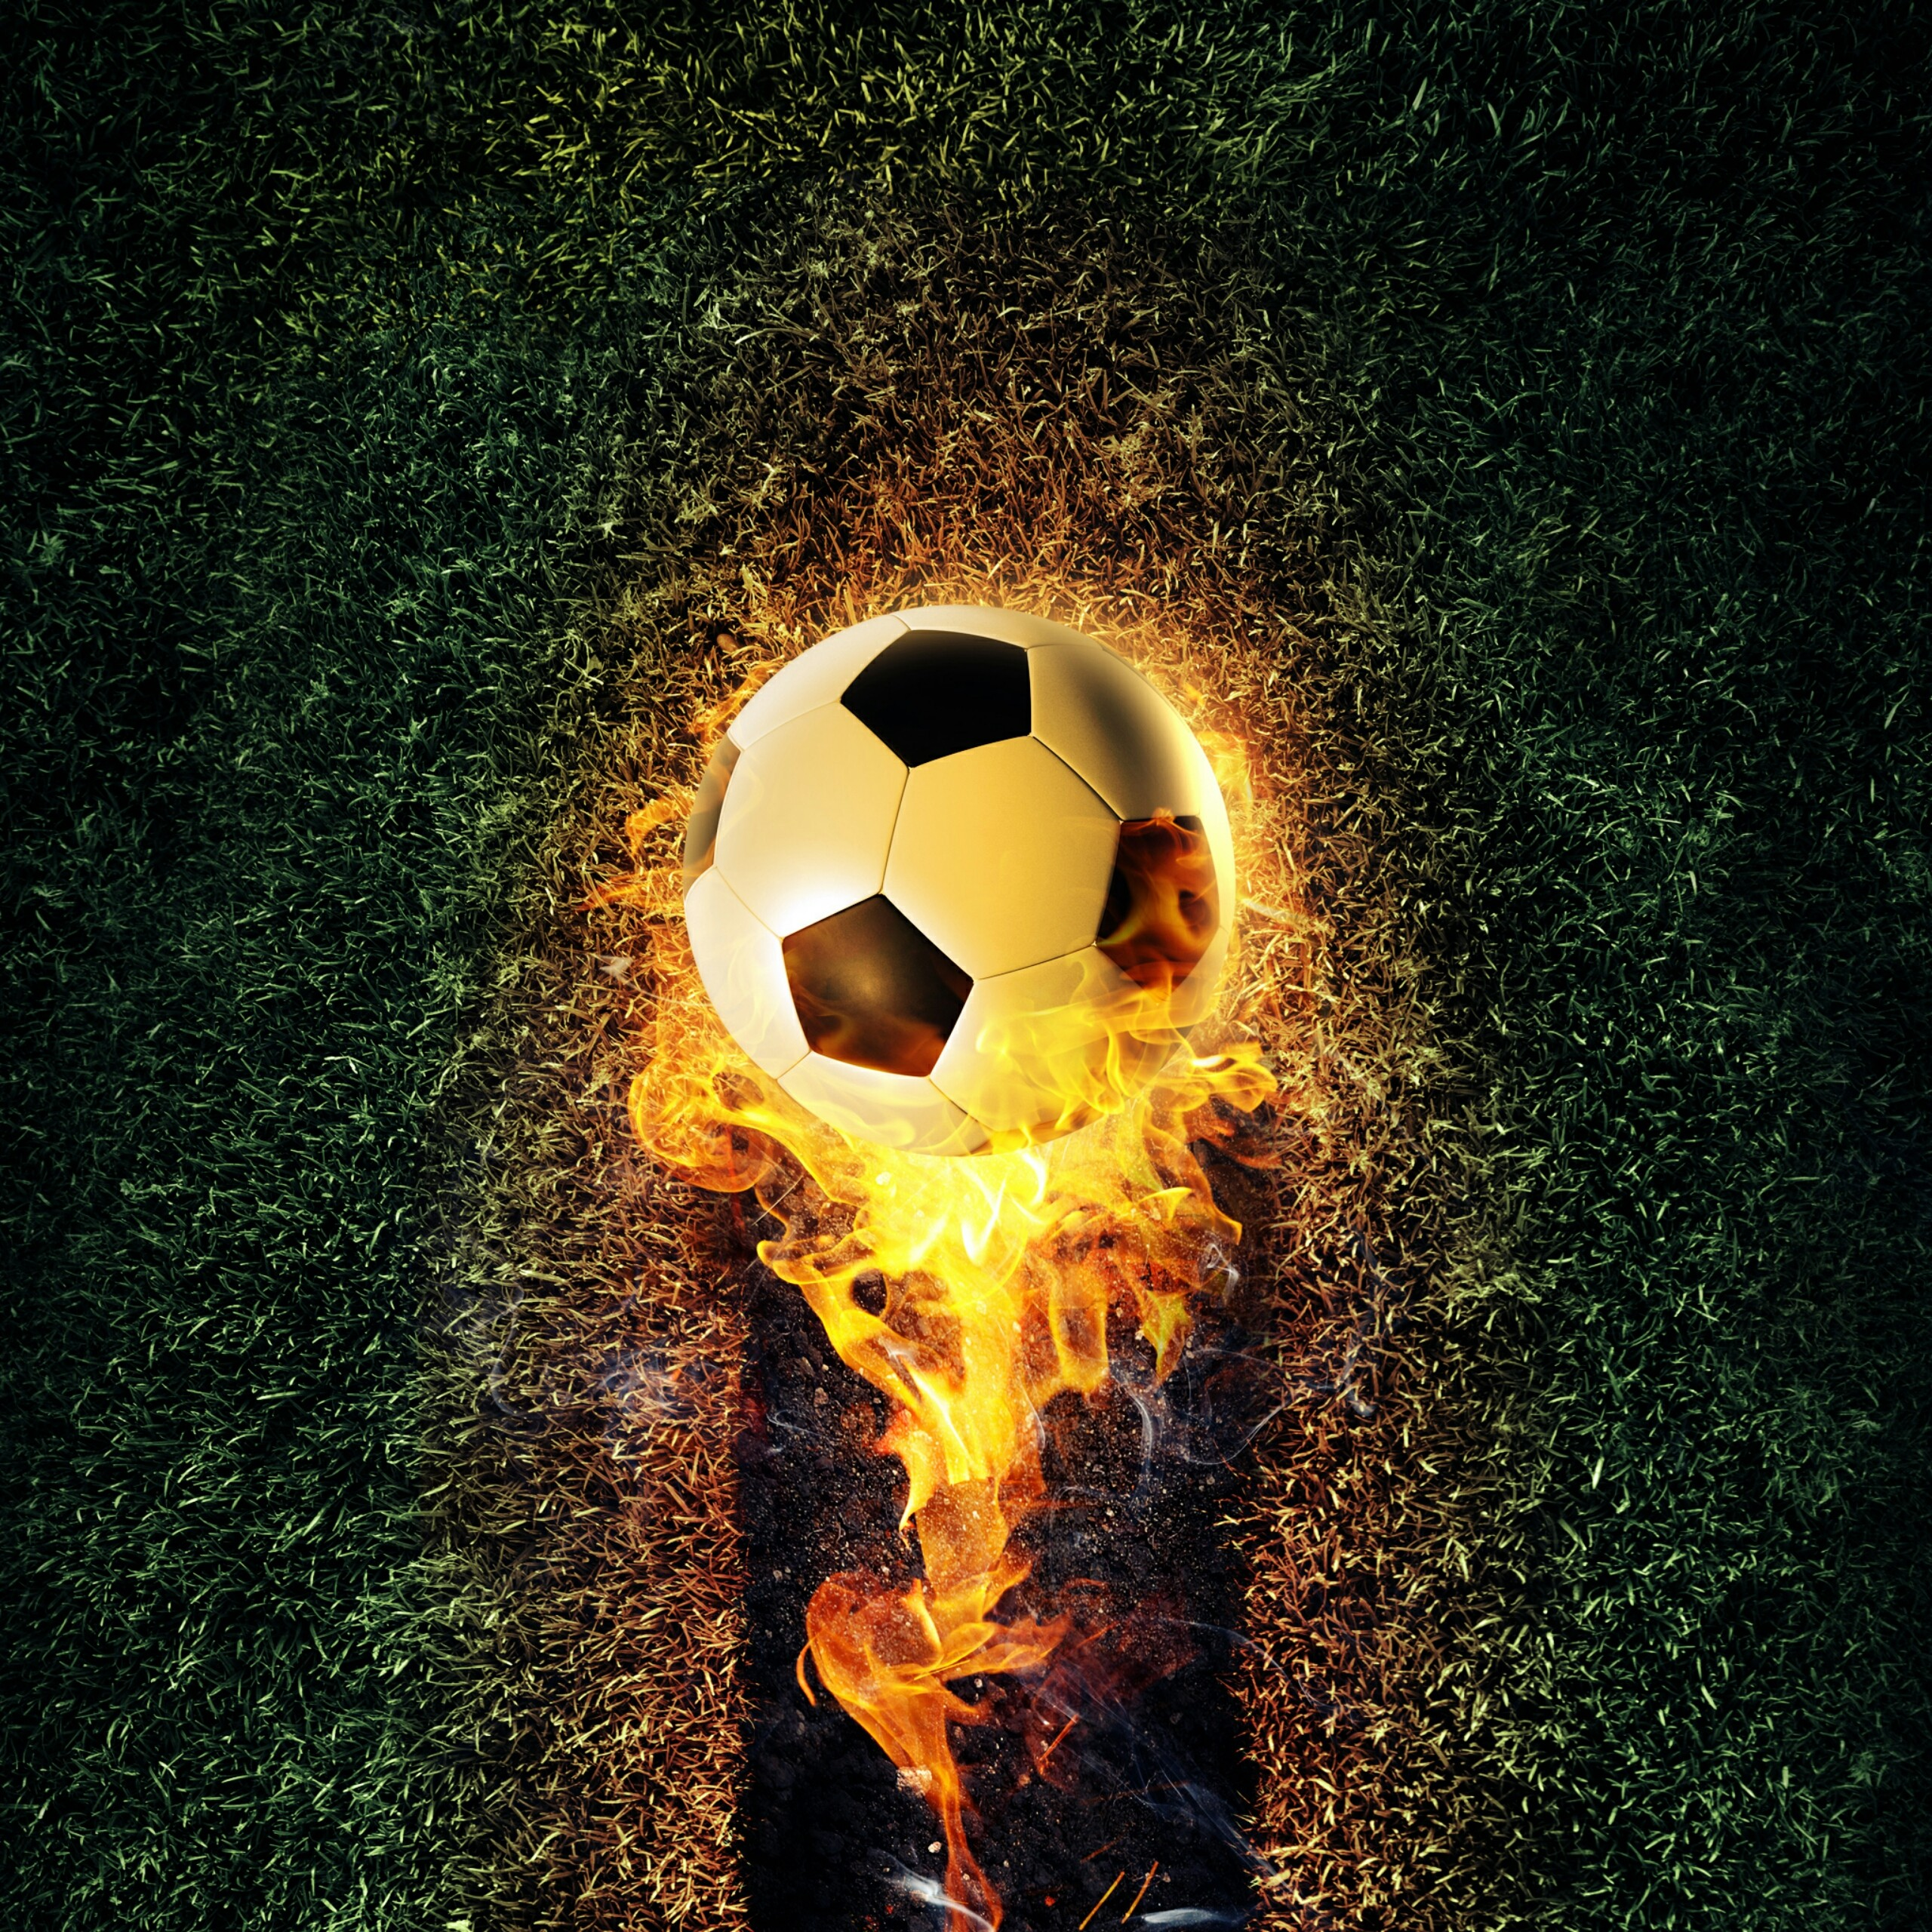 2560x2560 - Soccer Wallpapers 13